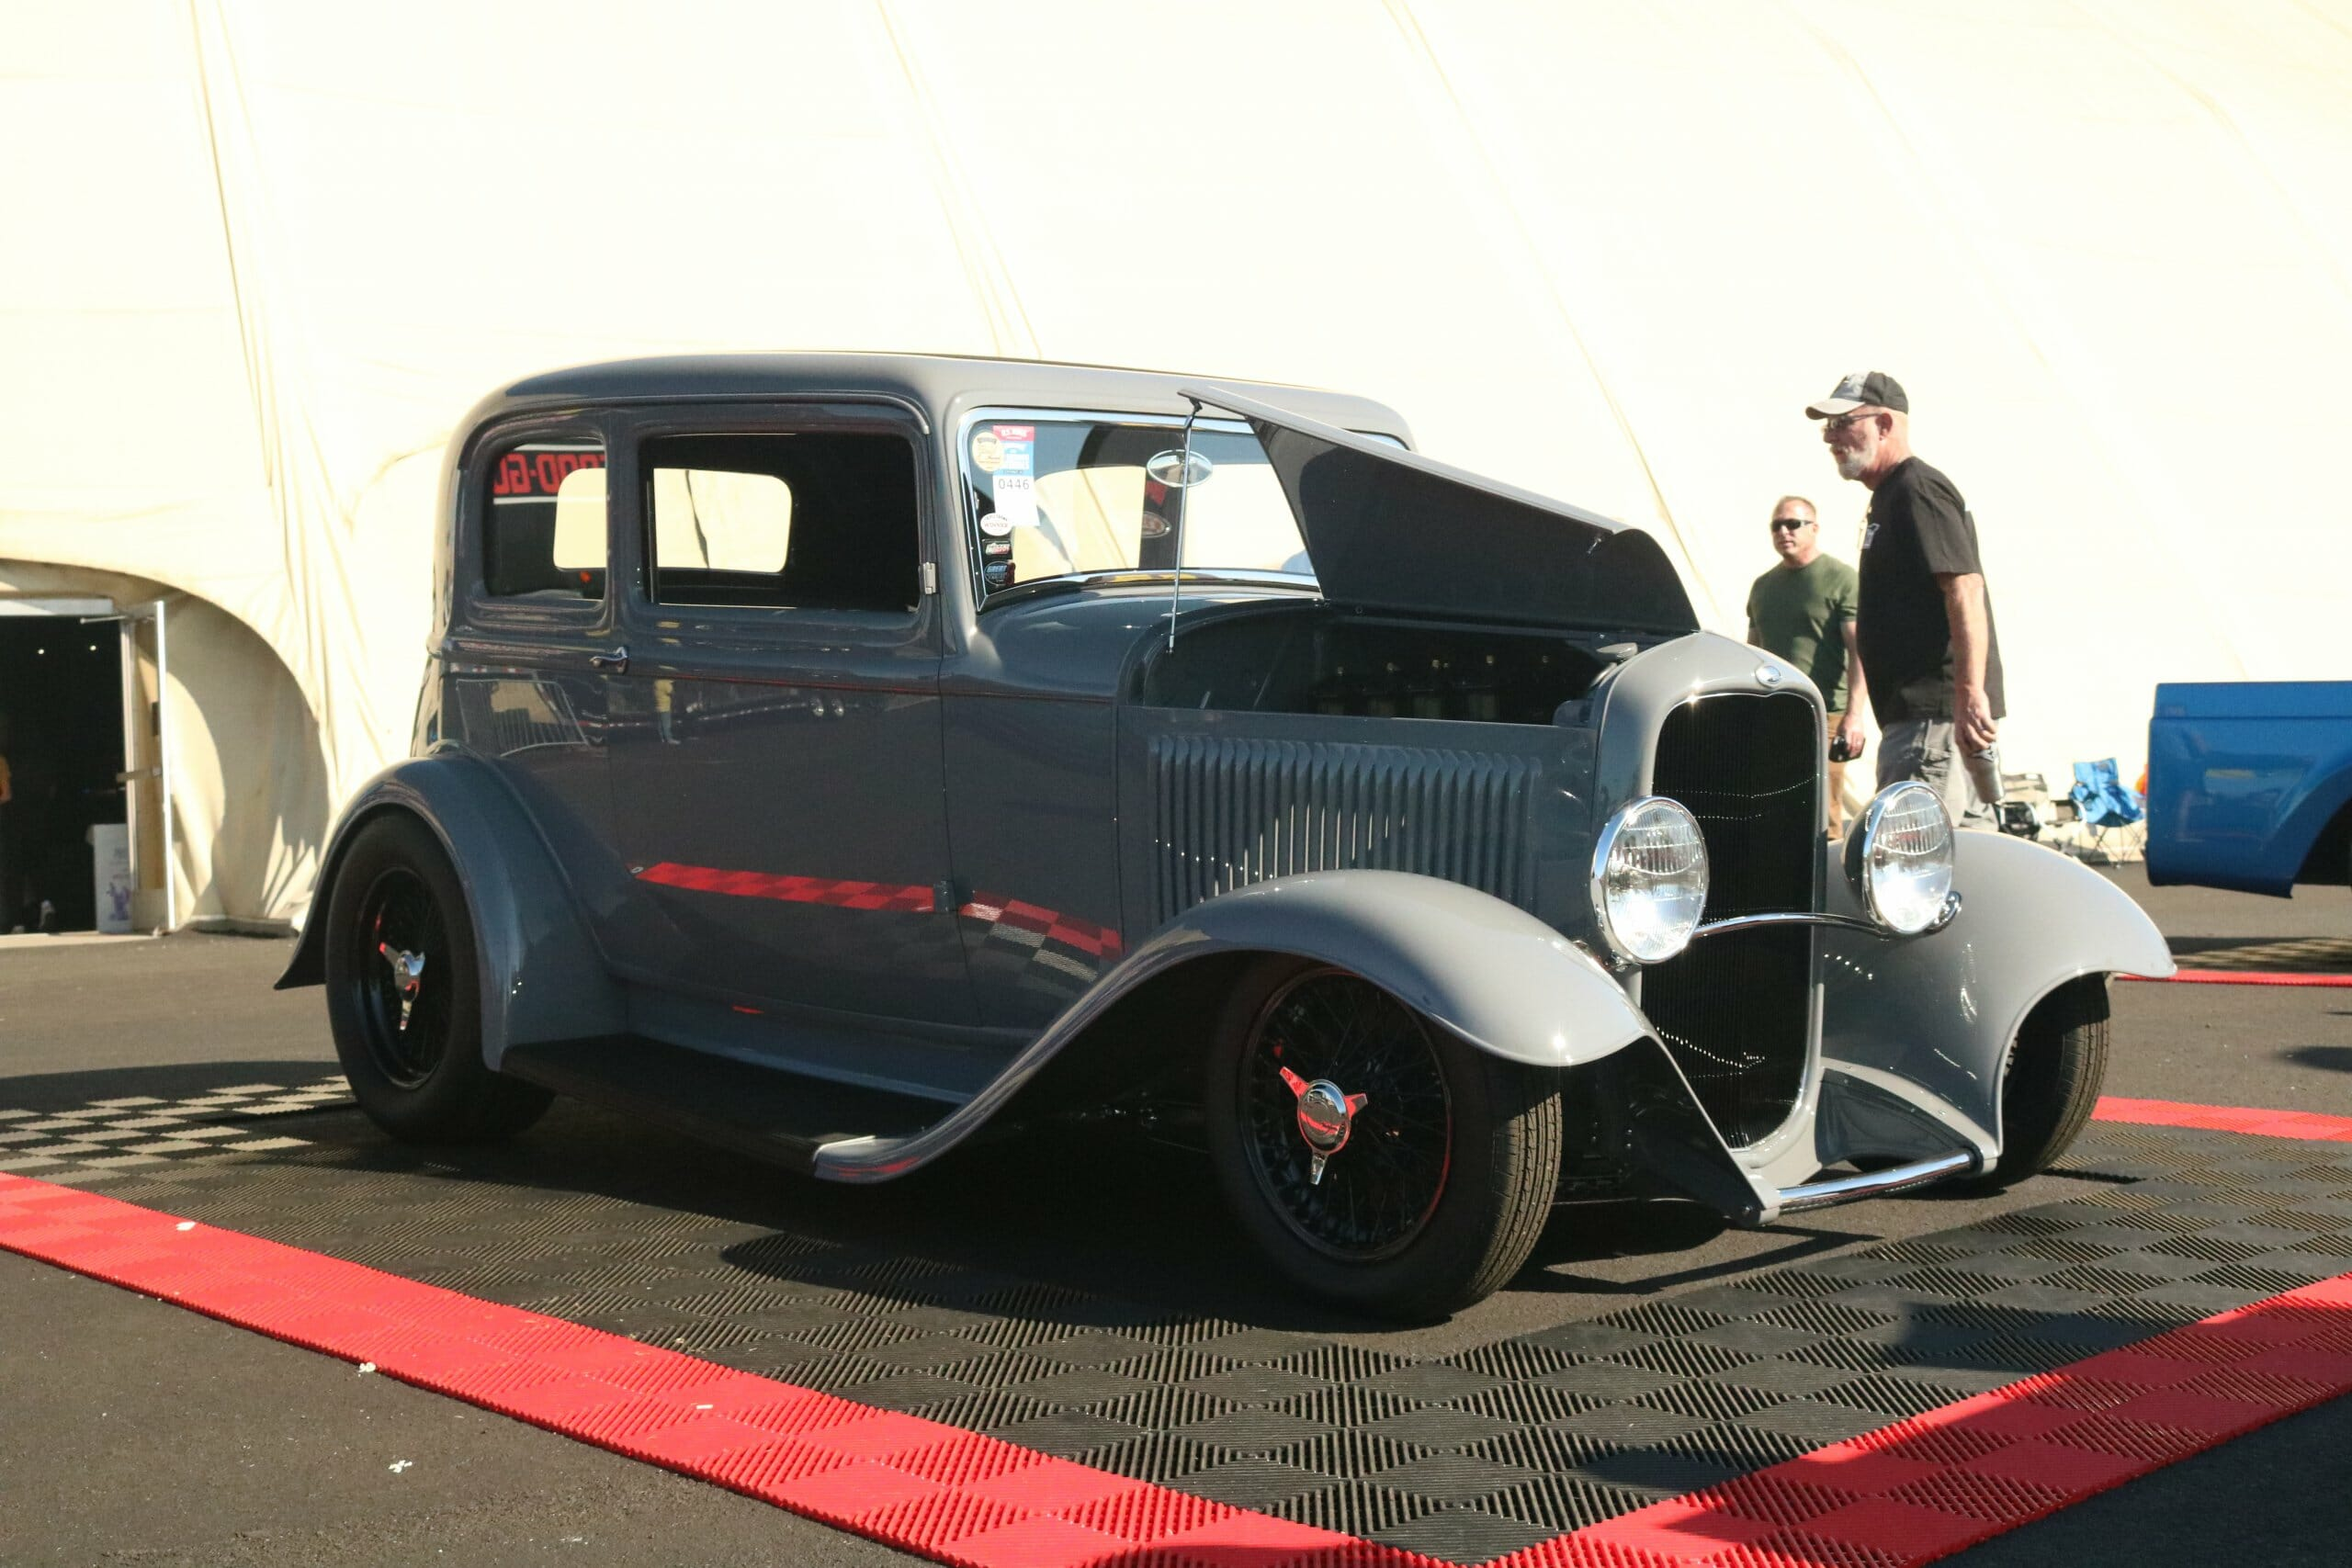 Goodguys, Goodguys' Top 12 featured at Southwest Nationals, ClassicCars.com Journal